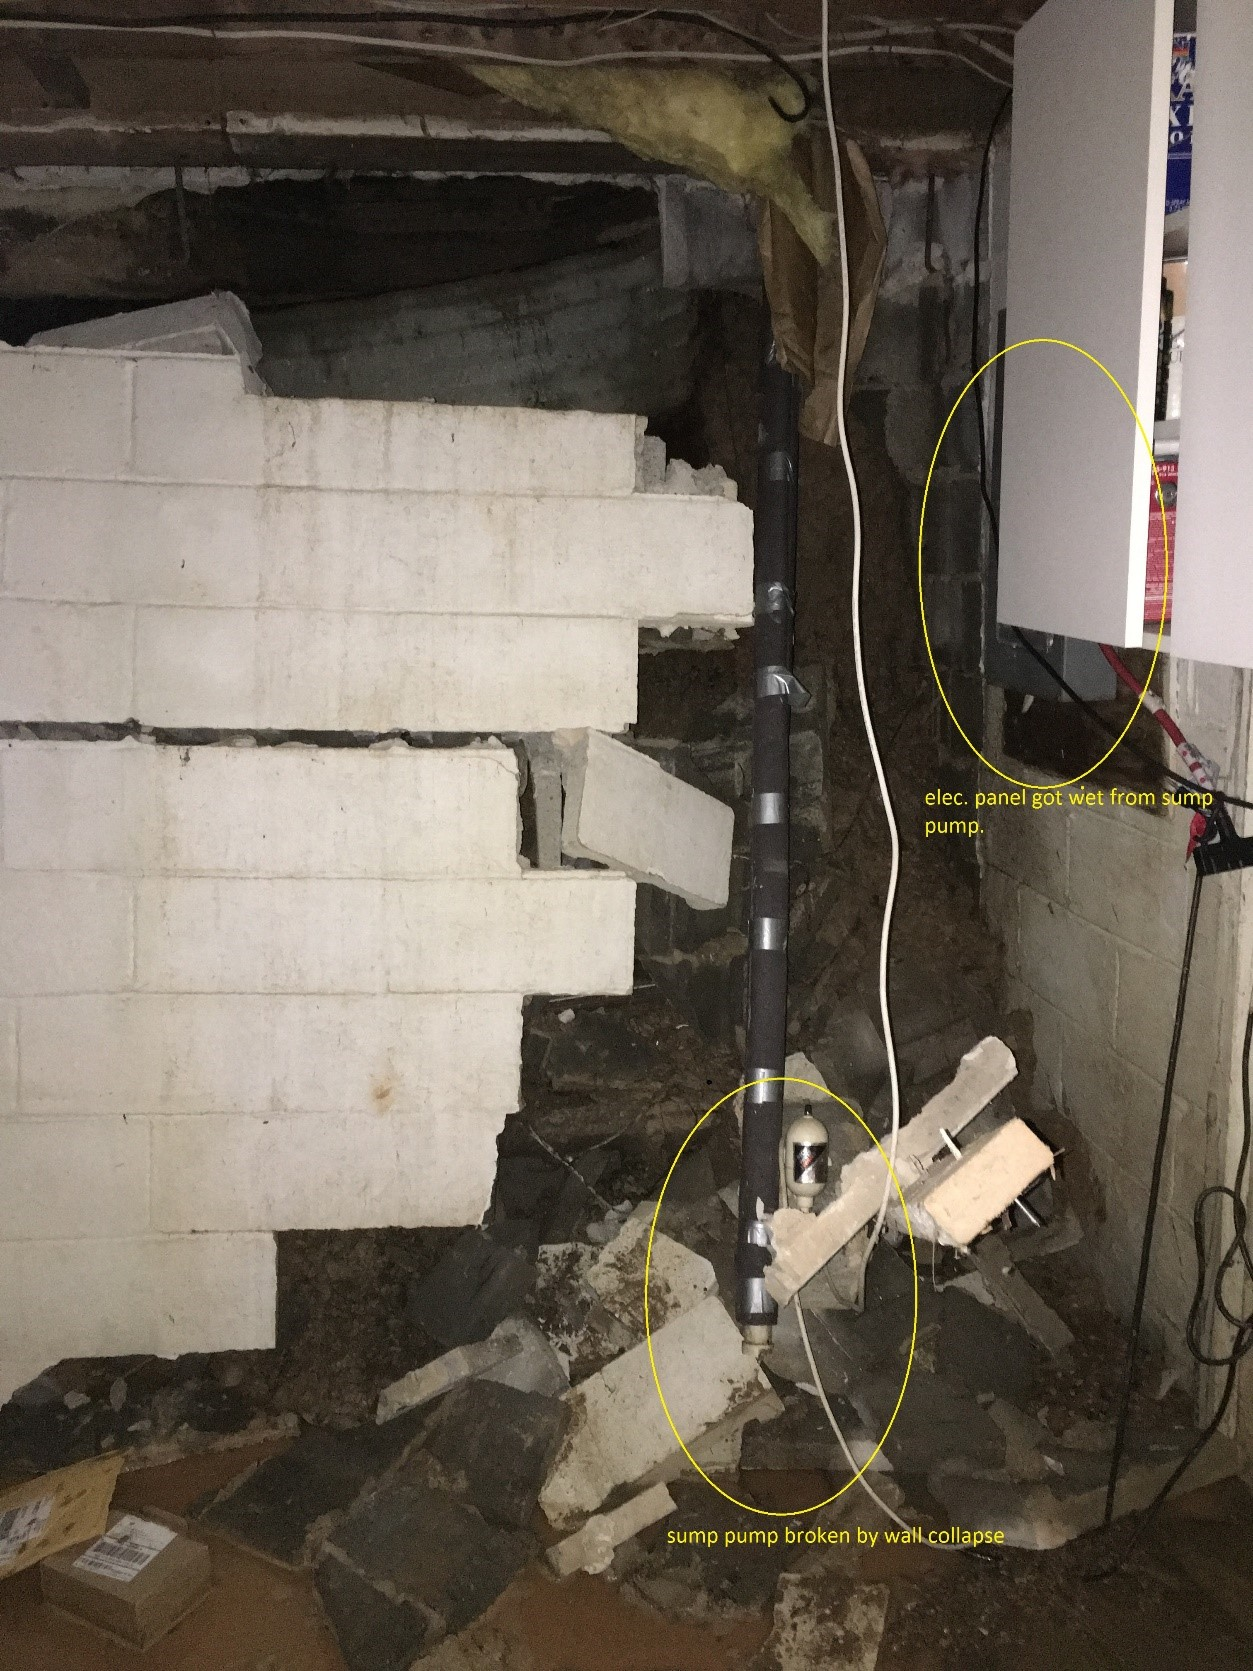 Wet Weather Causes Basement Wall Troubles